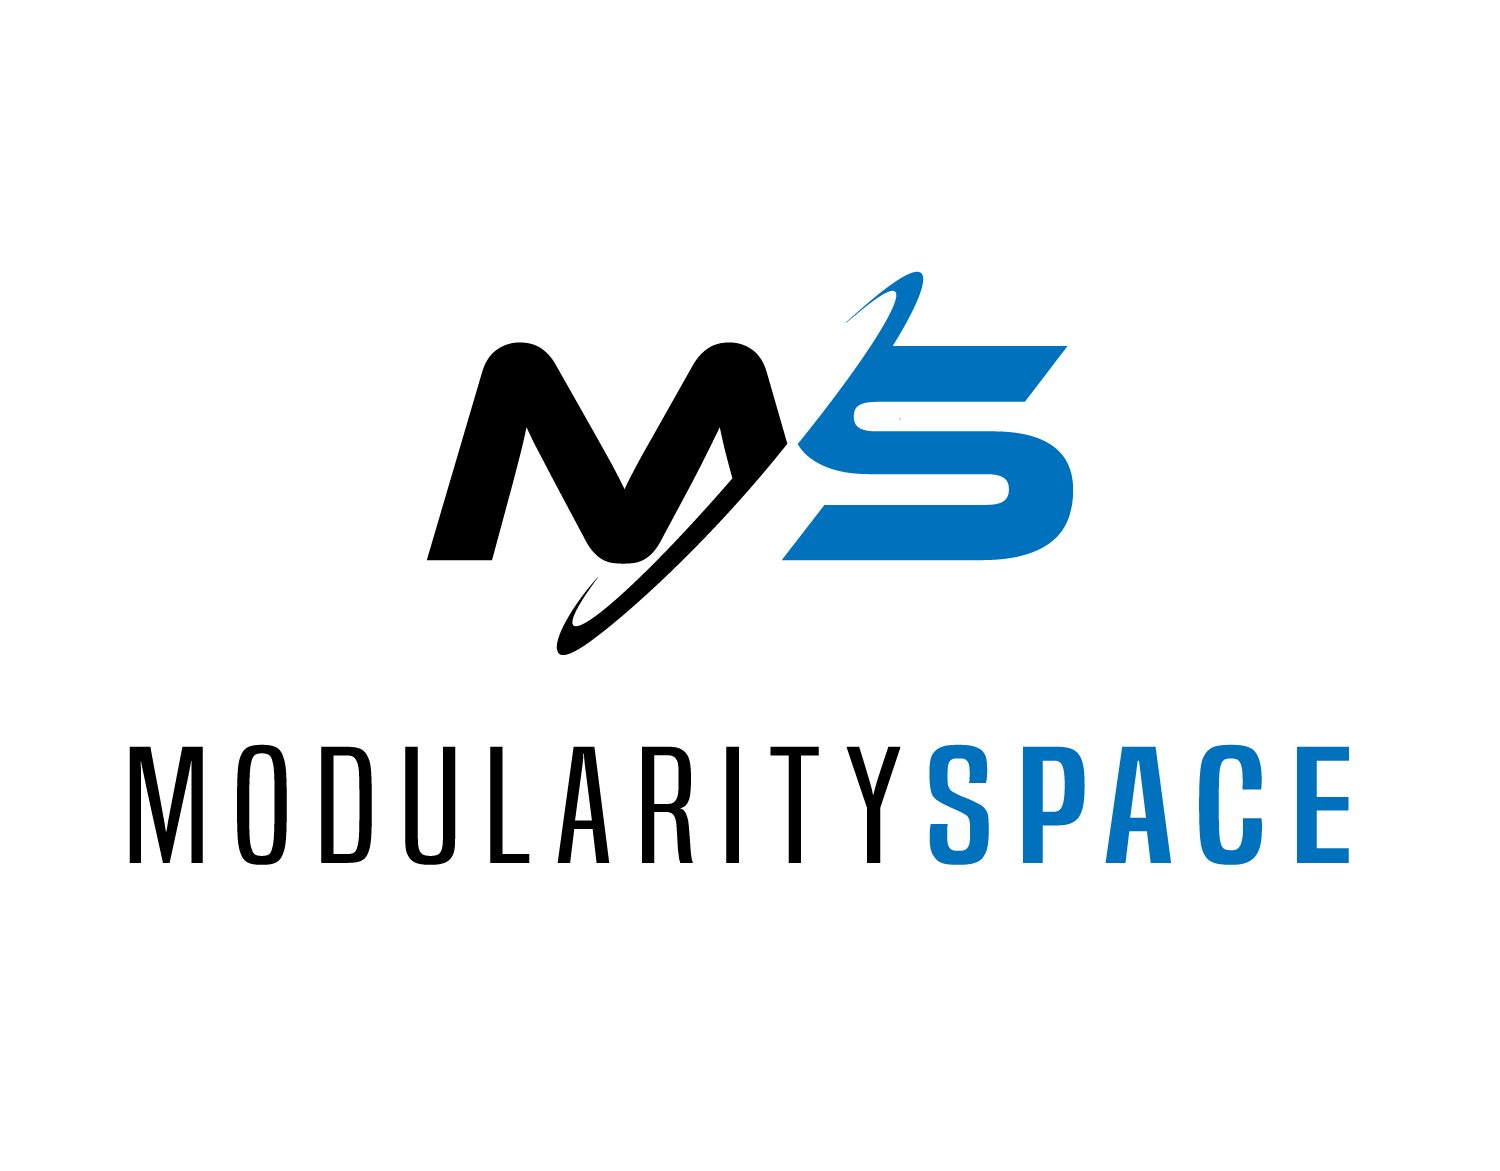 Modularity Space logo